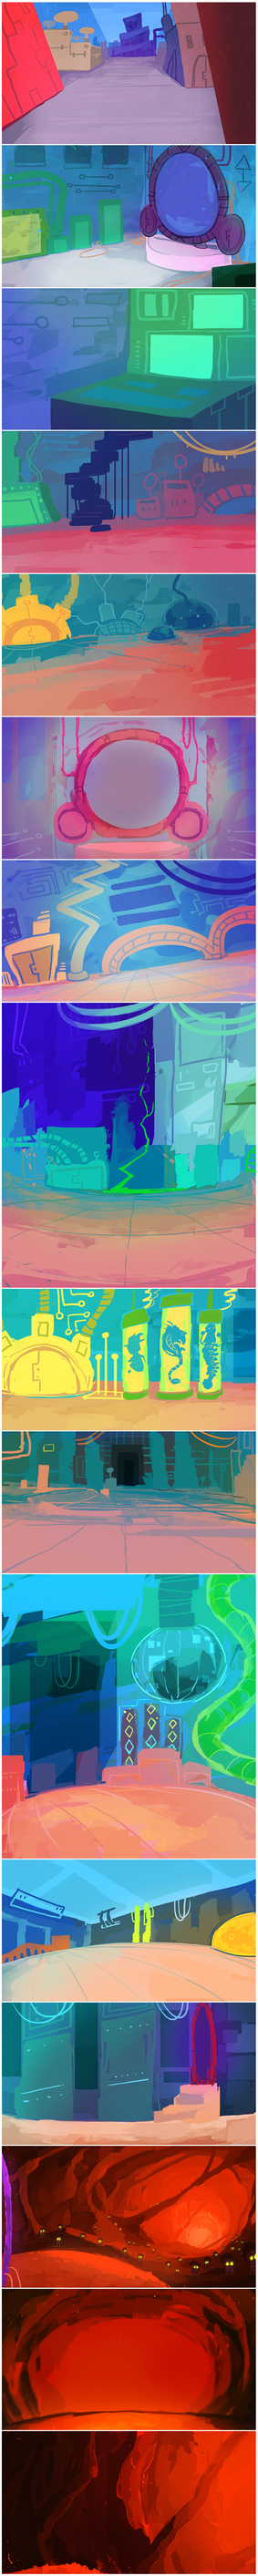 SplaDoom (backgrounds) by Stormful